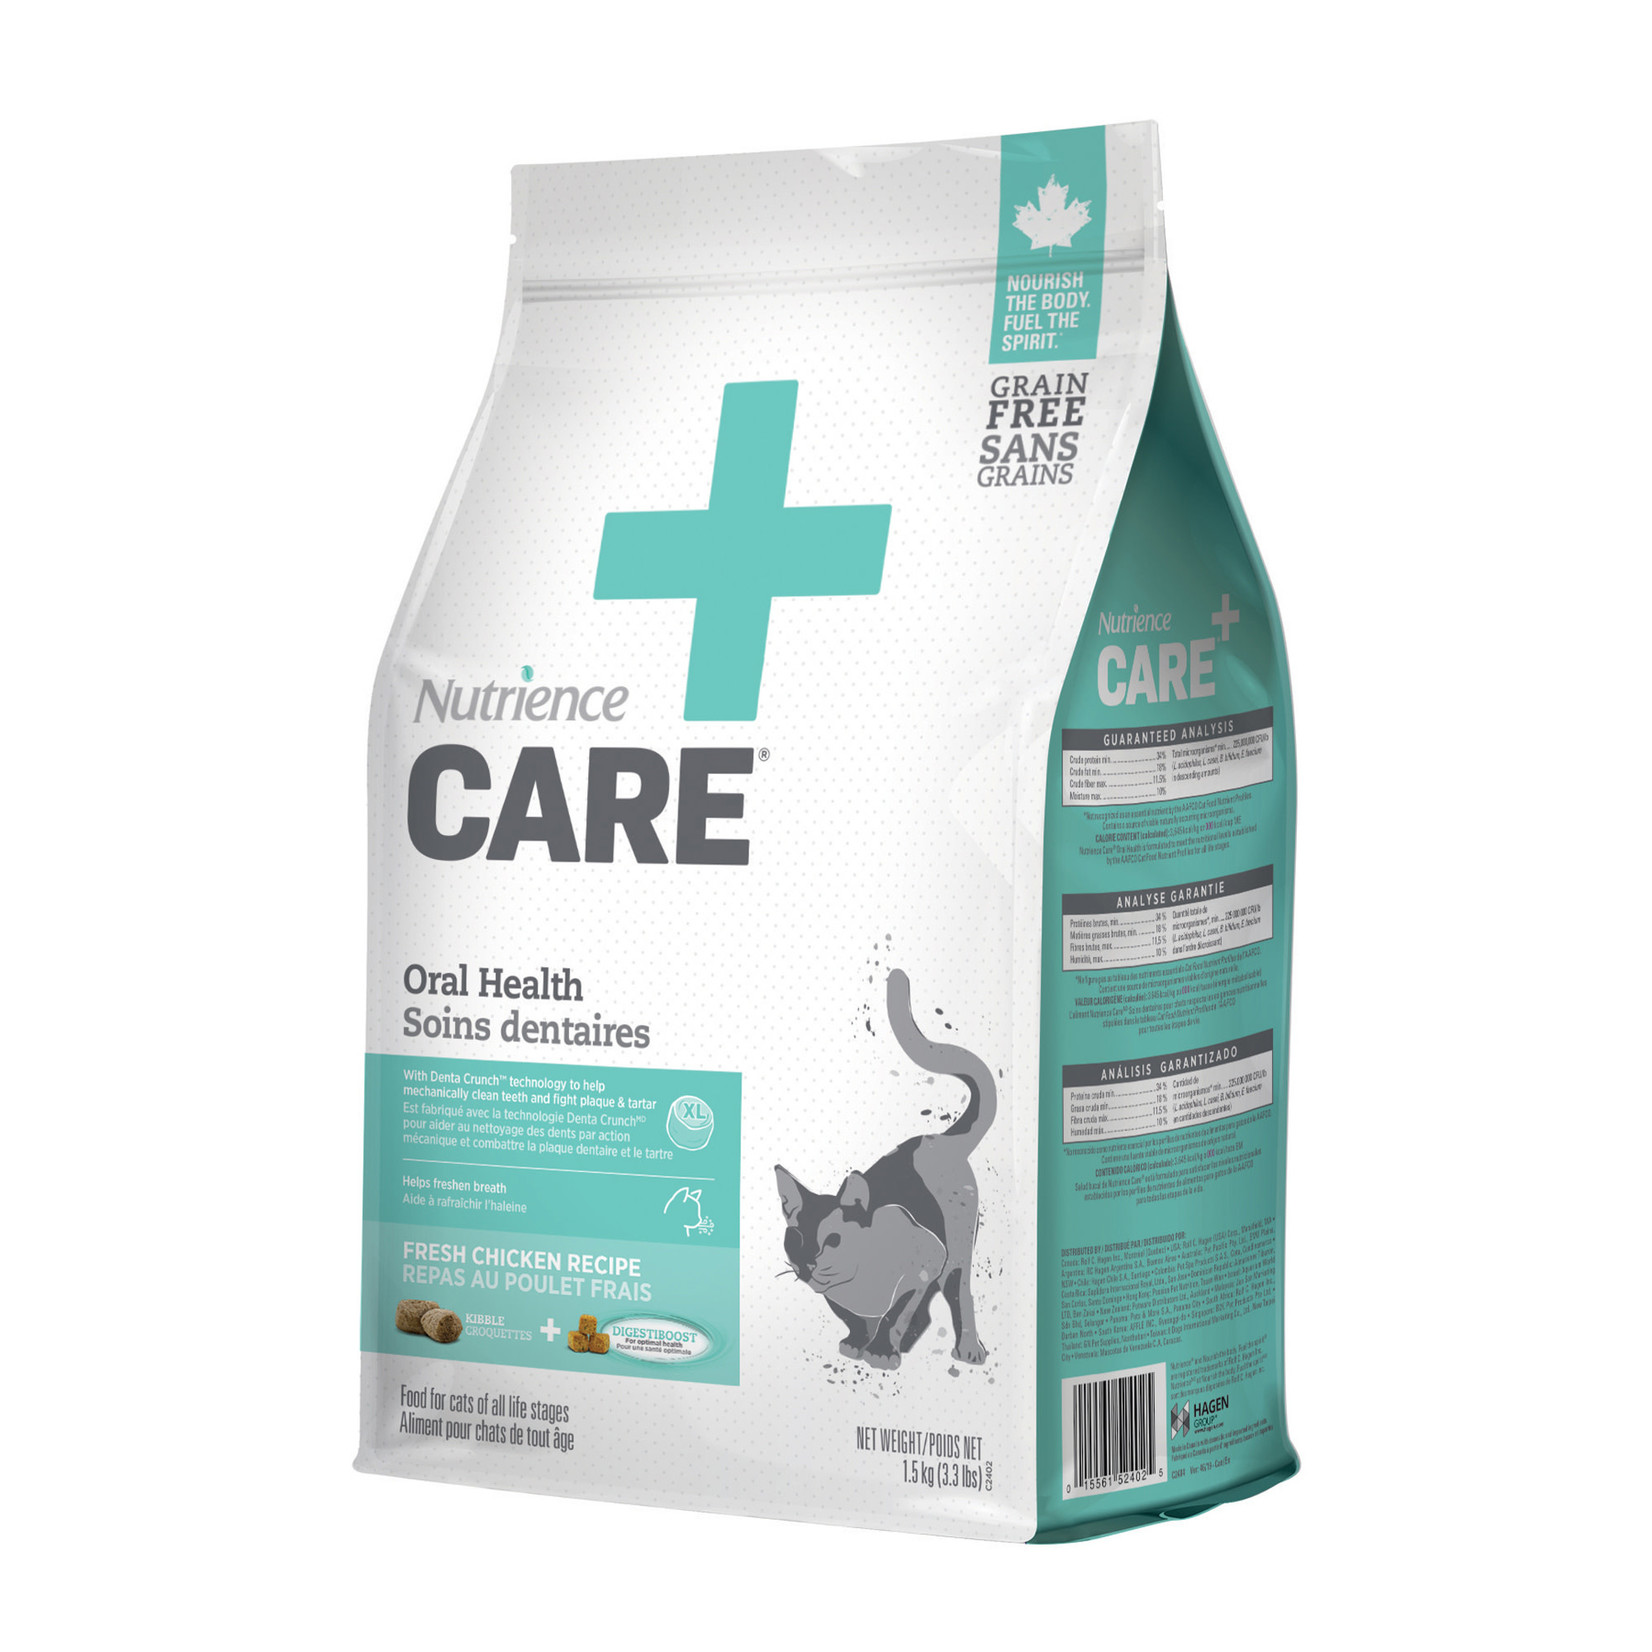 Nutrience Oral Care for Cats-Food-1.5kg (3lb)